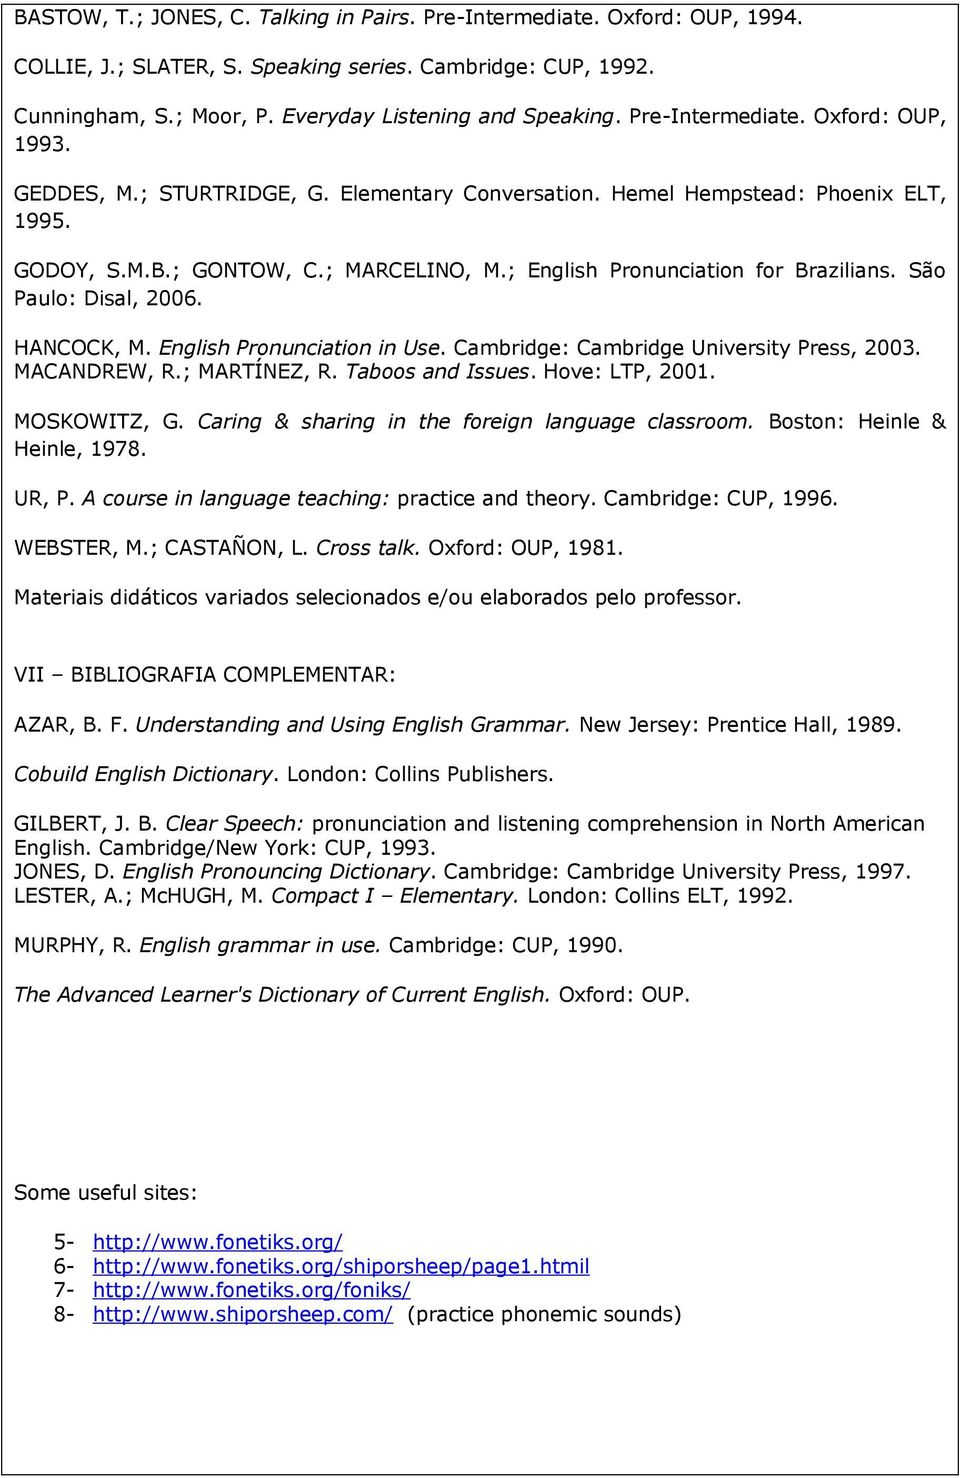 ; English Pronunciation for Brazilians. São Paulo: Disal, 2006. HANCOCK, M. English Pronunciation in Use. Cambridge: Cambridge University Press, 2003. MACANDREW, R.; MARTÍNEZ, R. Taboos and Issues.